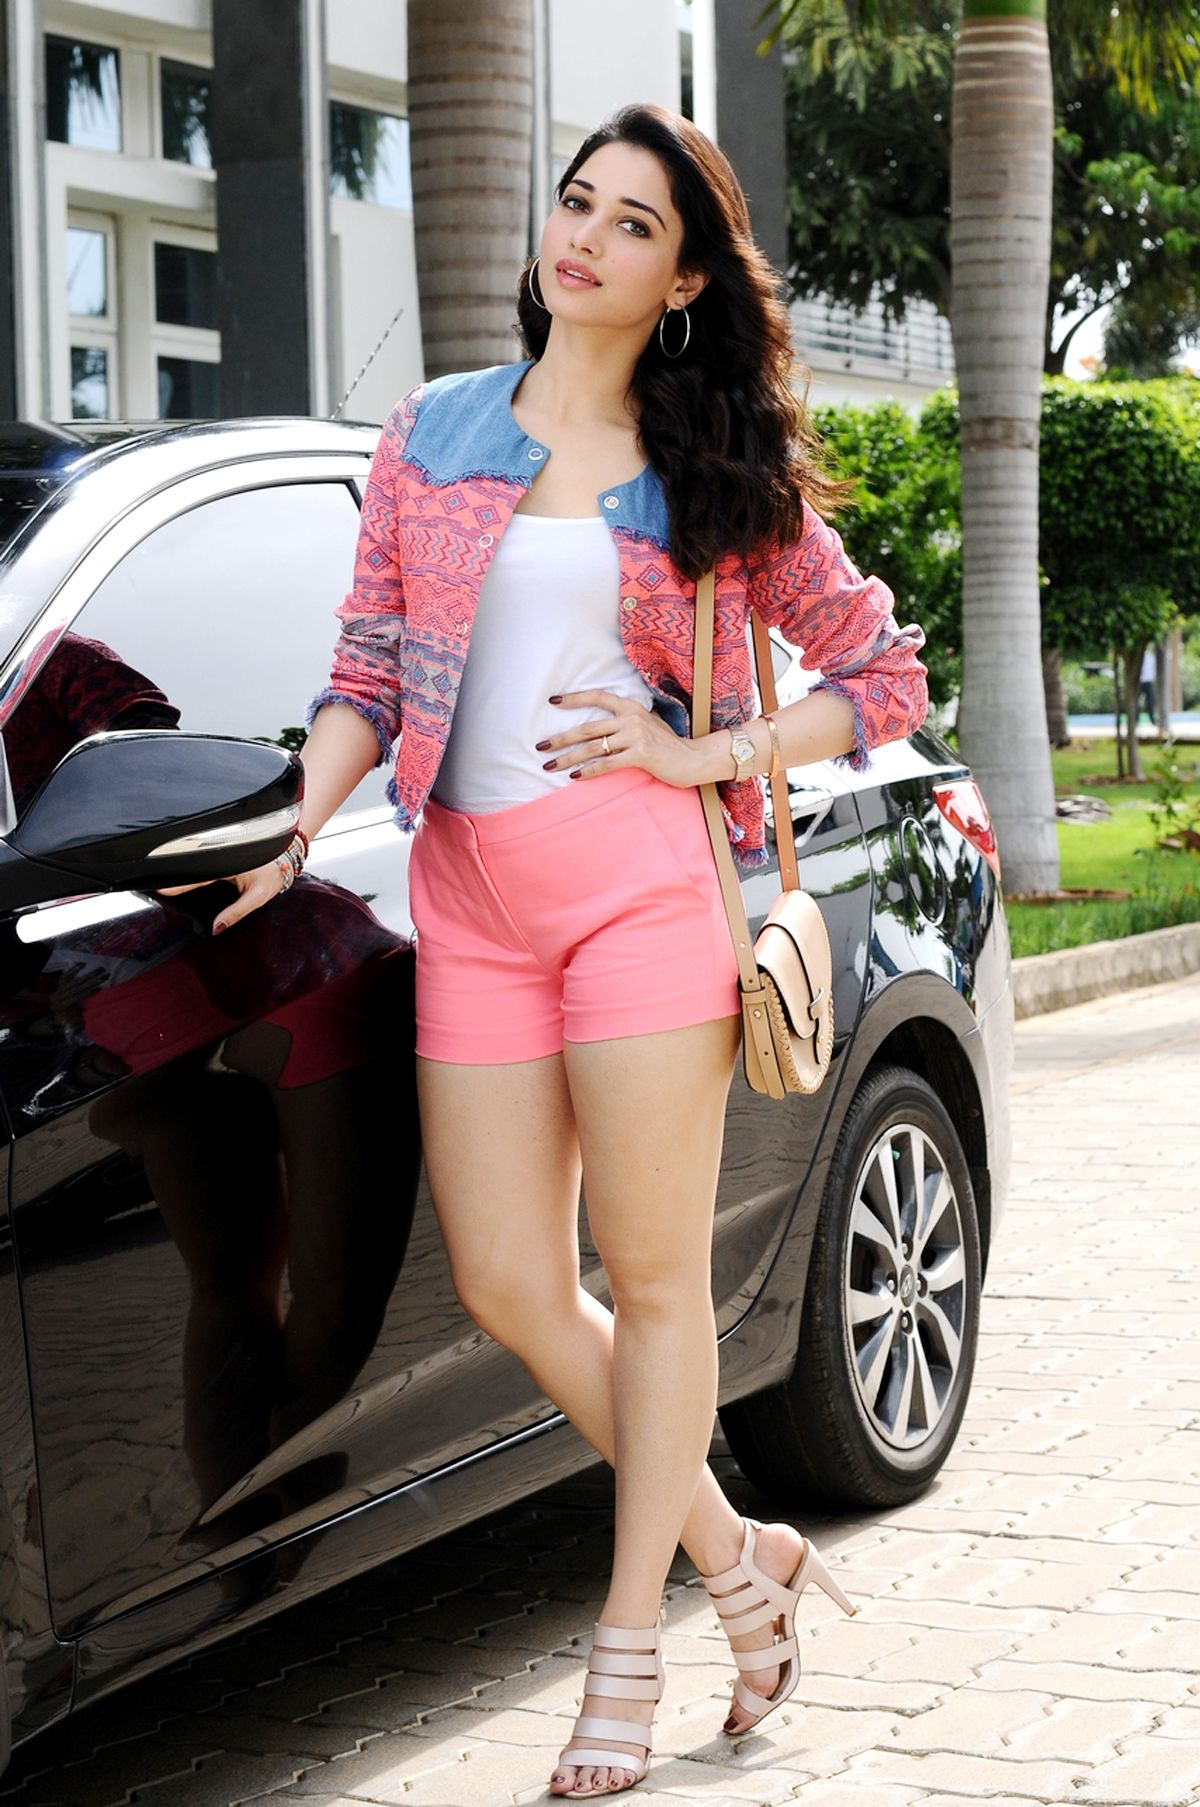 http://hotthighs.in/?post=336/actress-tamanna-hot-thighs-photo